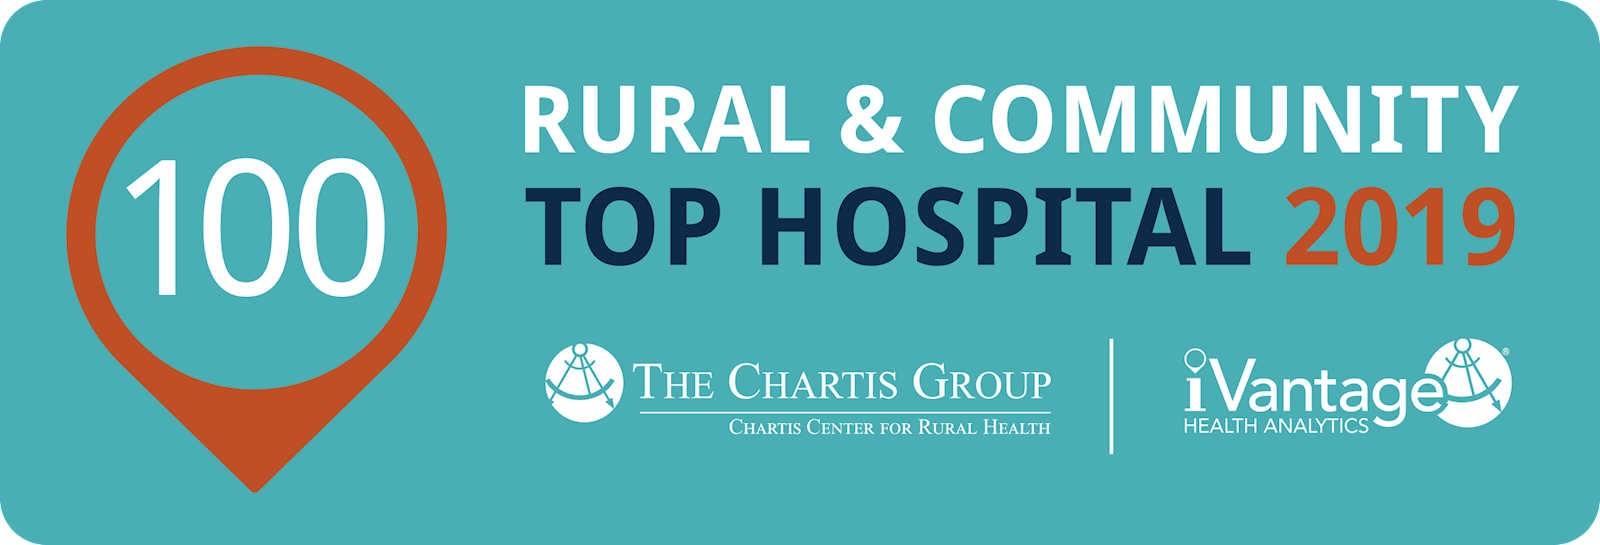 Rural and Community Top 100 Hospital